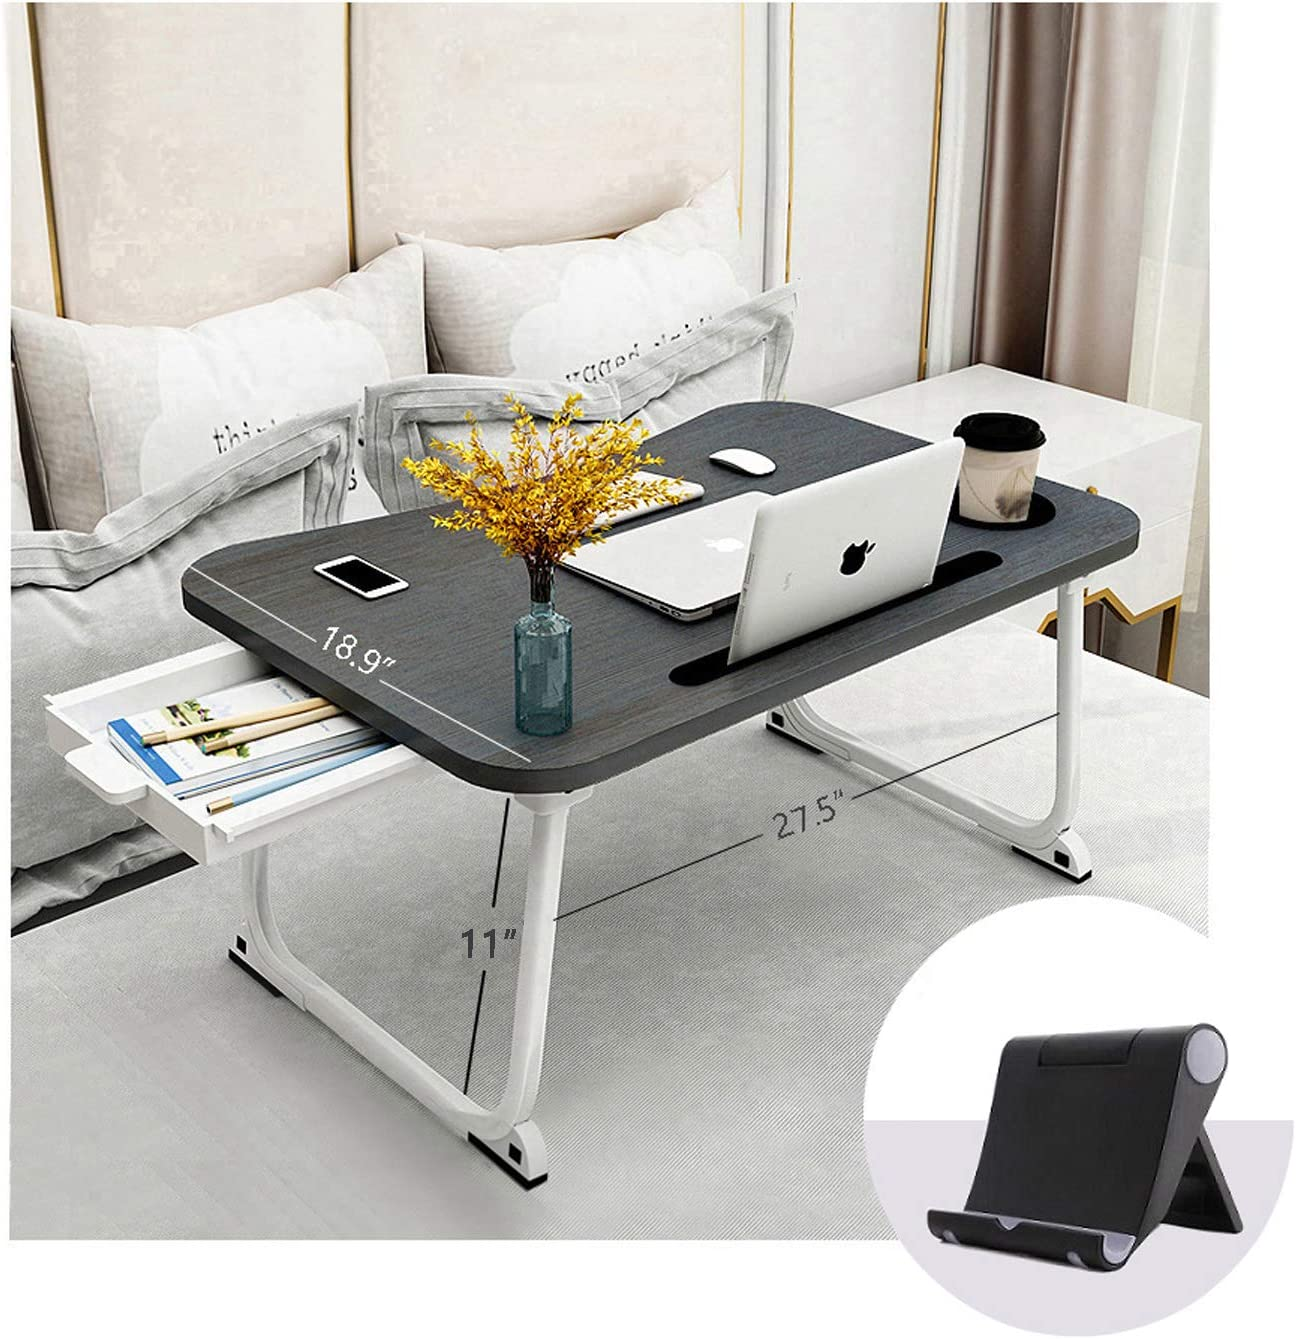 "Bed Tray Lap Desk, XXL Portable Laptop Table with Cup Holder, Foldable Laptop Stand with Storage Drawer and Phone Stand, Ergonomic Standing Laptop Tray in Bed/Couch/Sofa/Office(27.5""x18.9""x11"")"